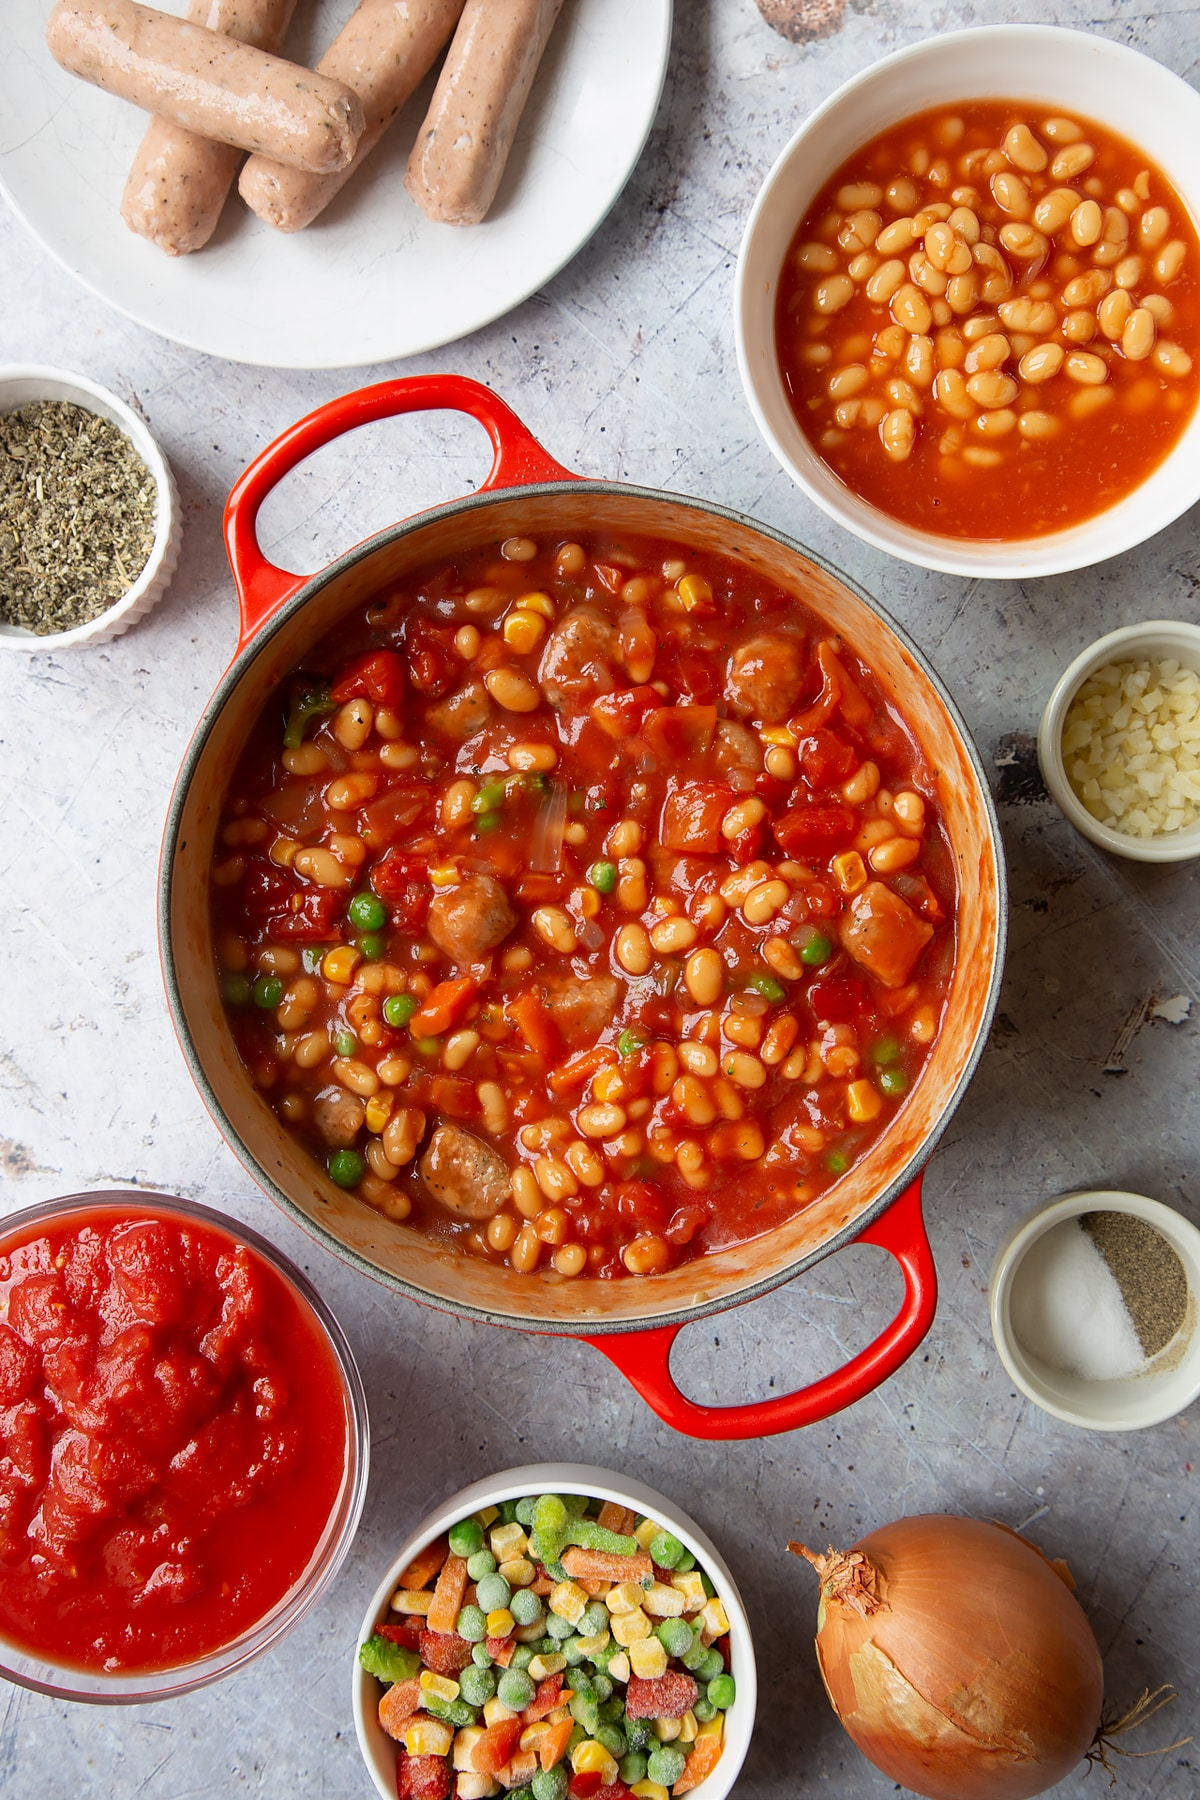 Fried onions, chopped vegetarian sausages, beans, chopped tomatoes and frozen chopped vegetables mixed together in a large pot. Ingredients to make veggie sausage and bean casserole surround the pot.